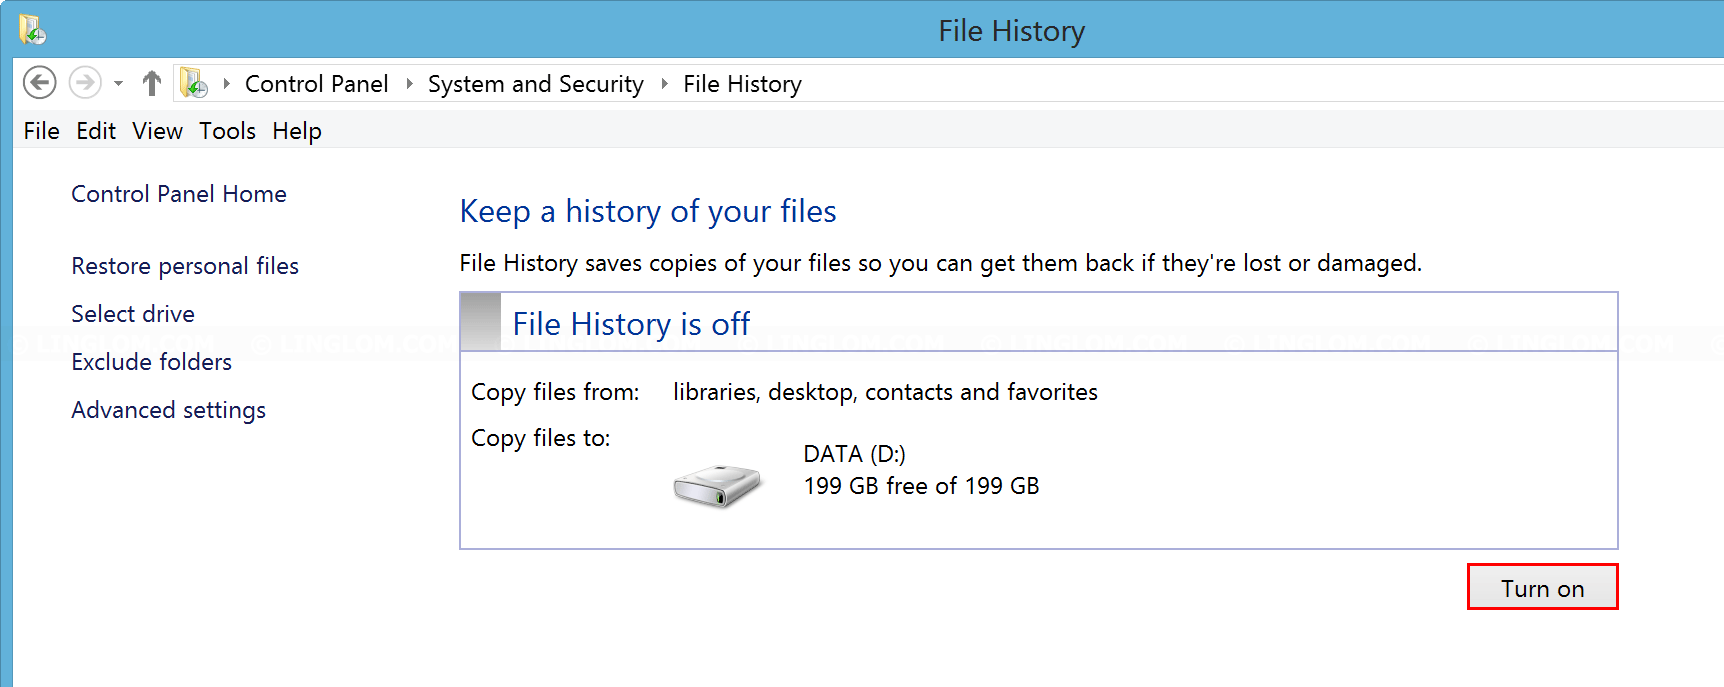 Turn on File History